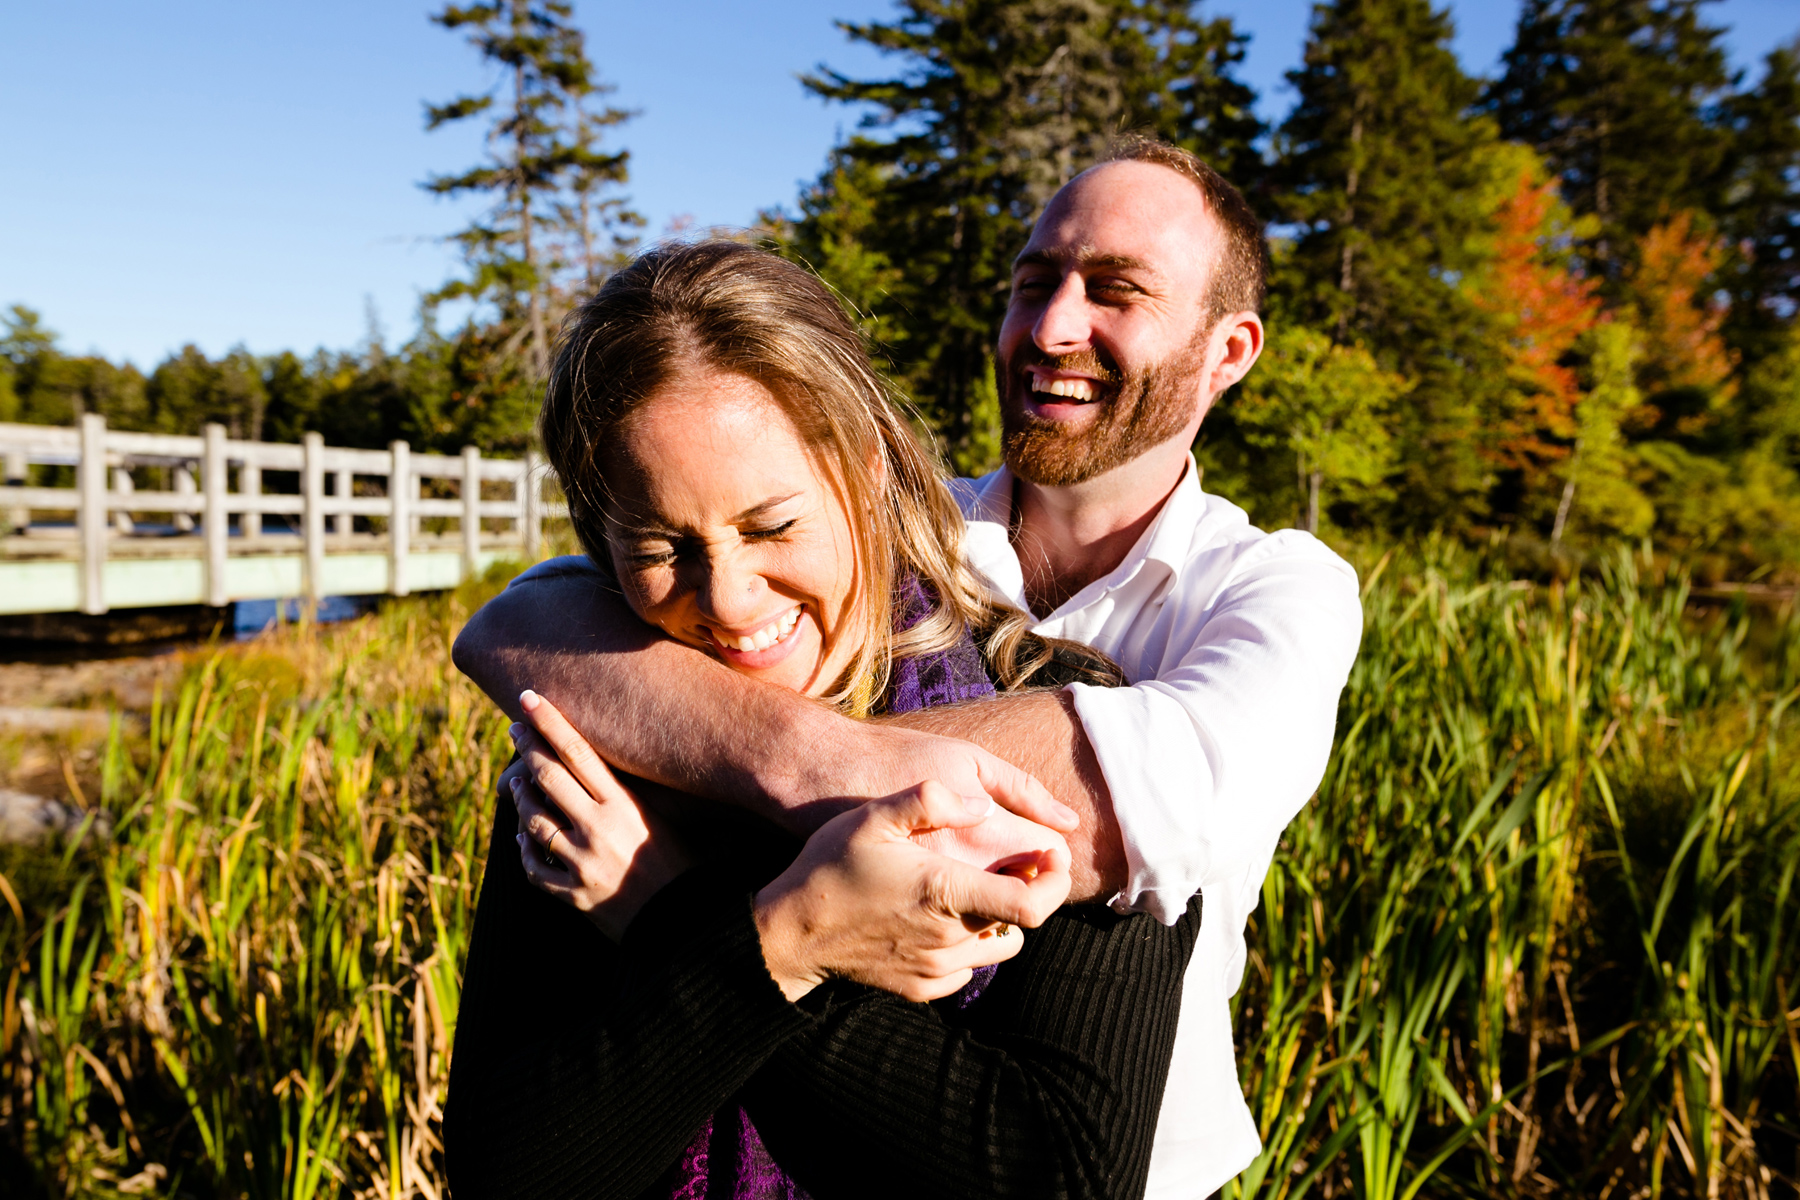 008-fredericton-engagement-photography-kandisebrown-hd2017